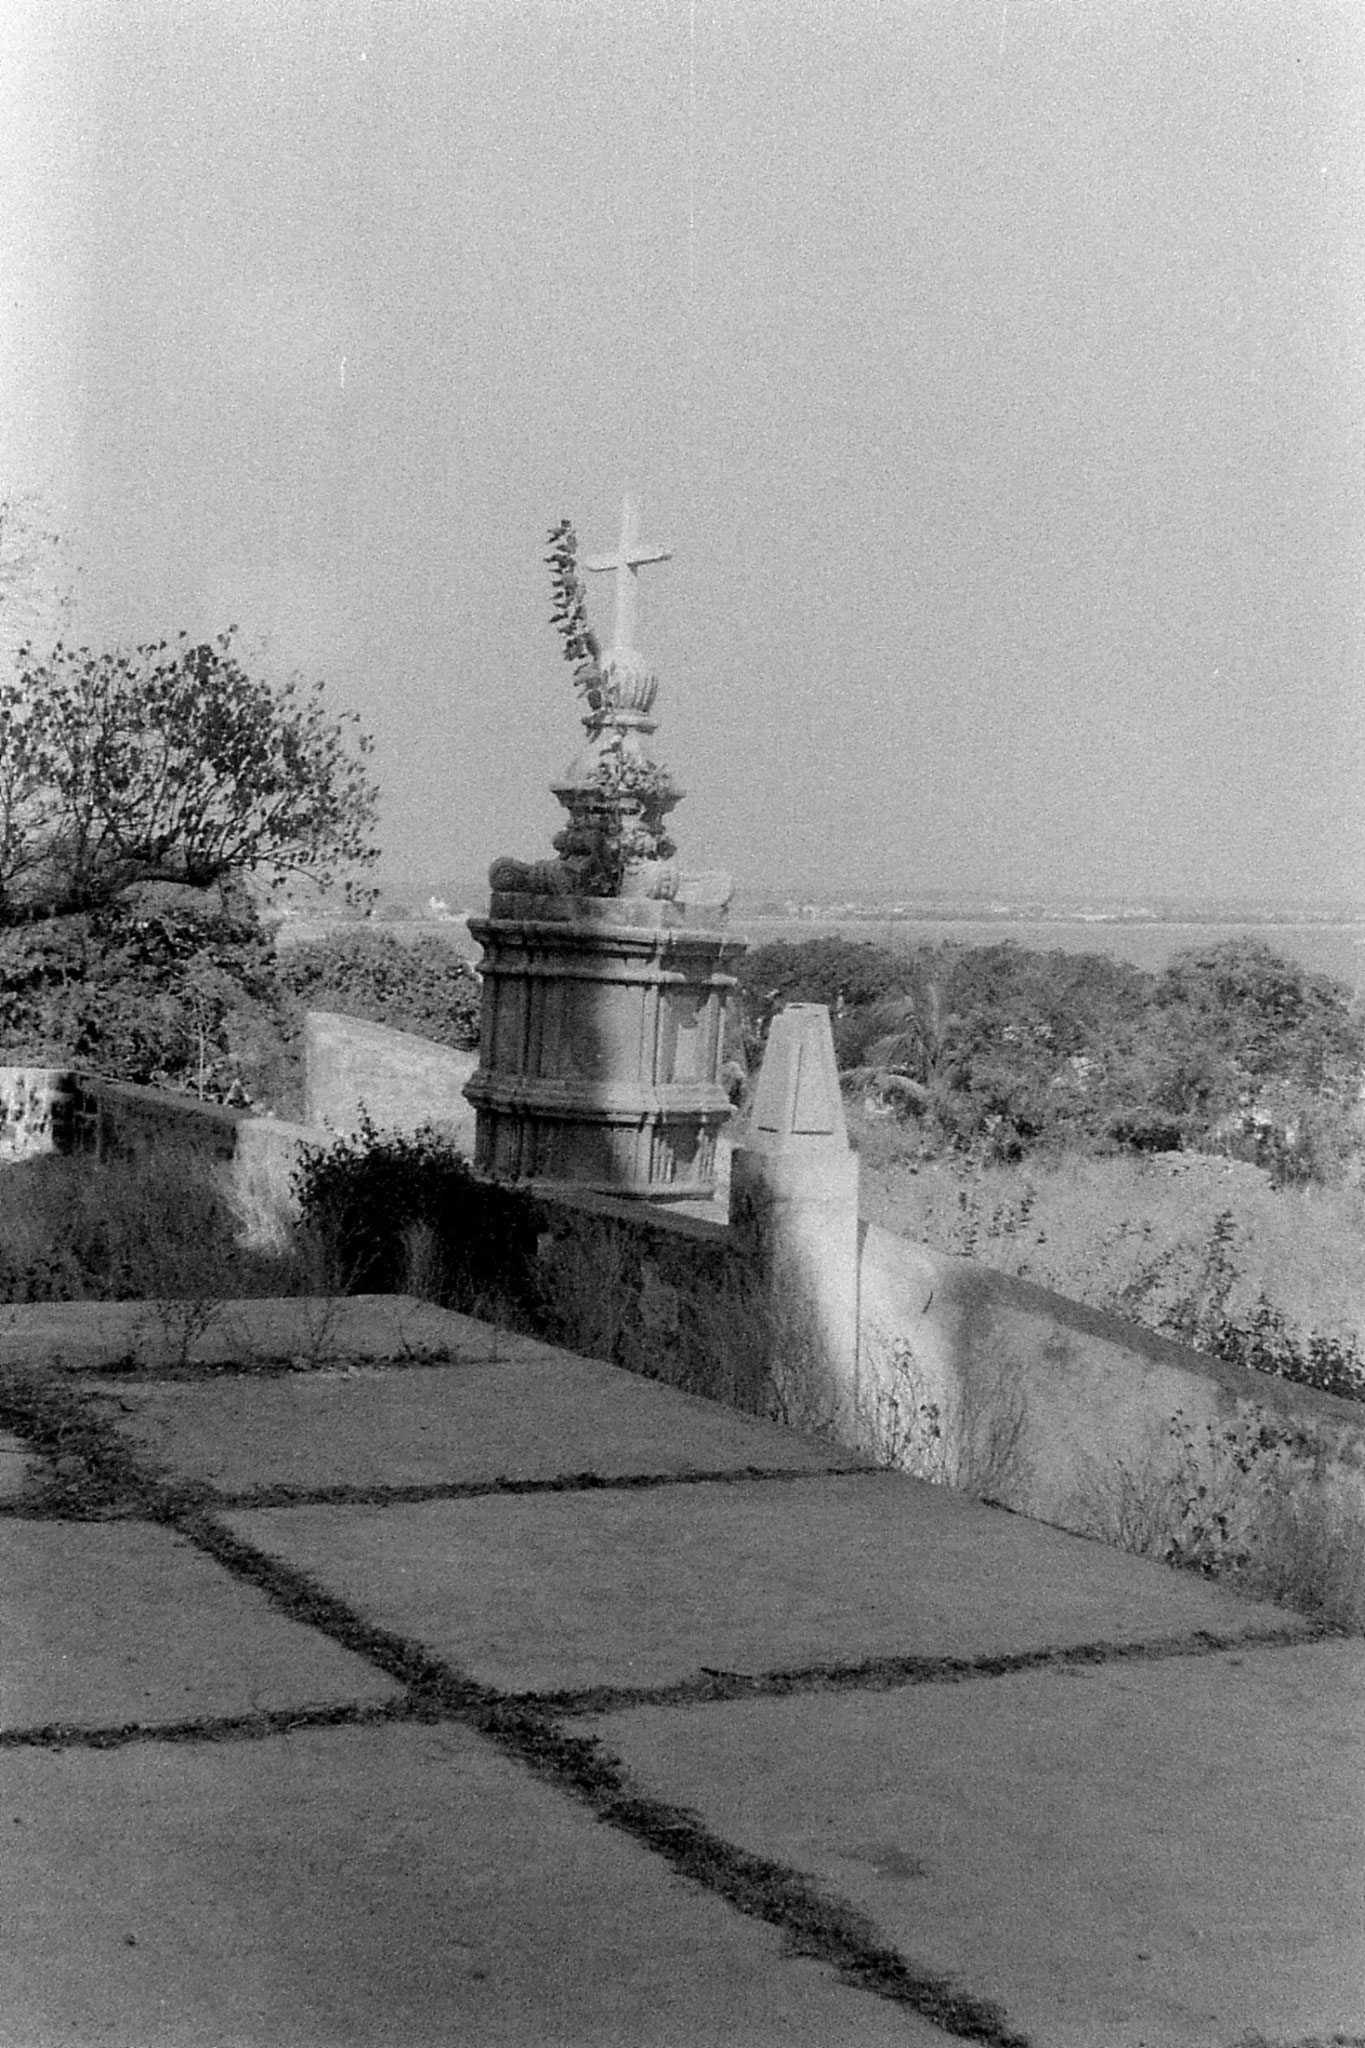 16/12/89: 12: Diu:  cross with temple in background